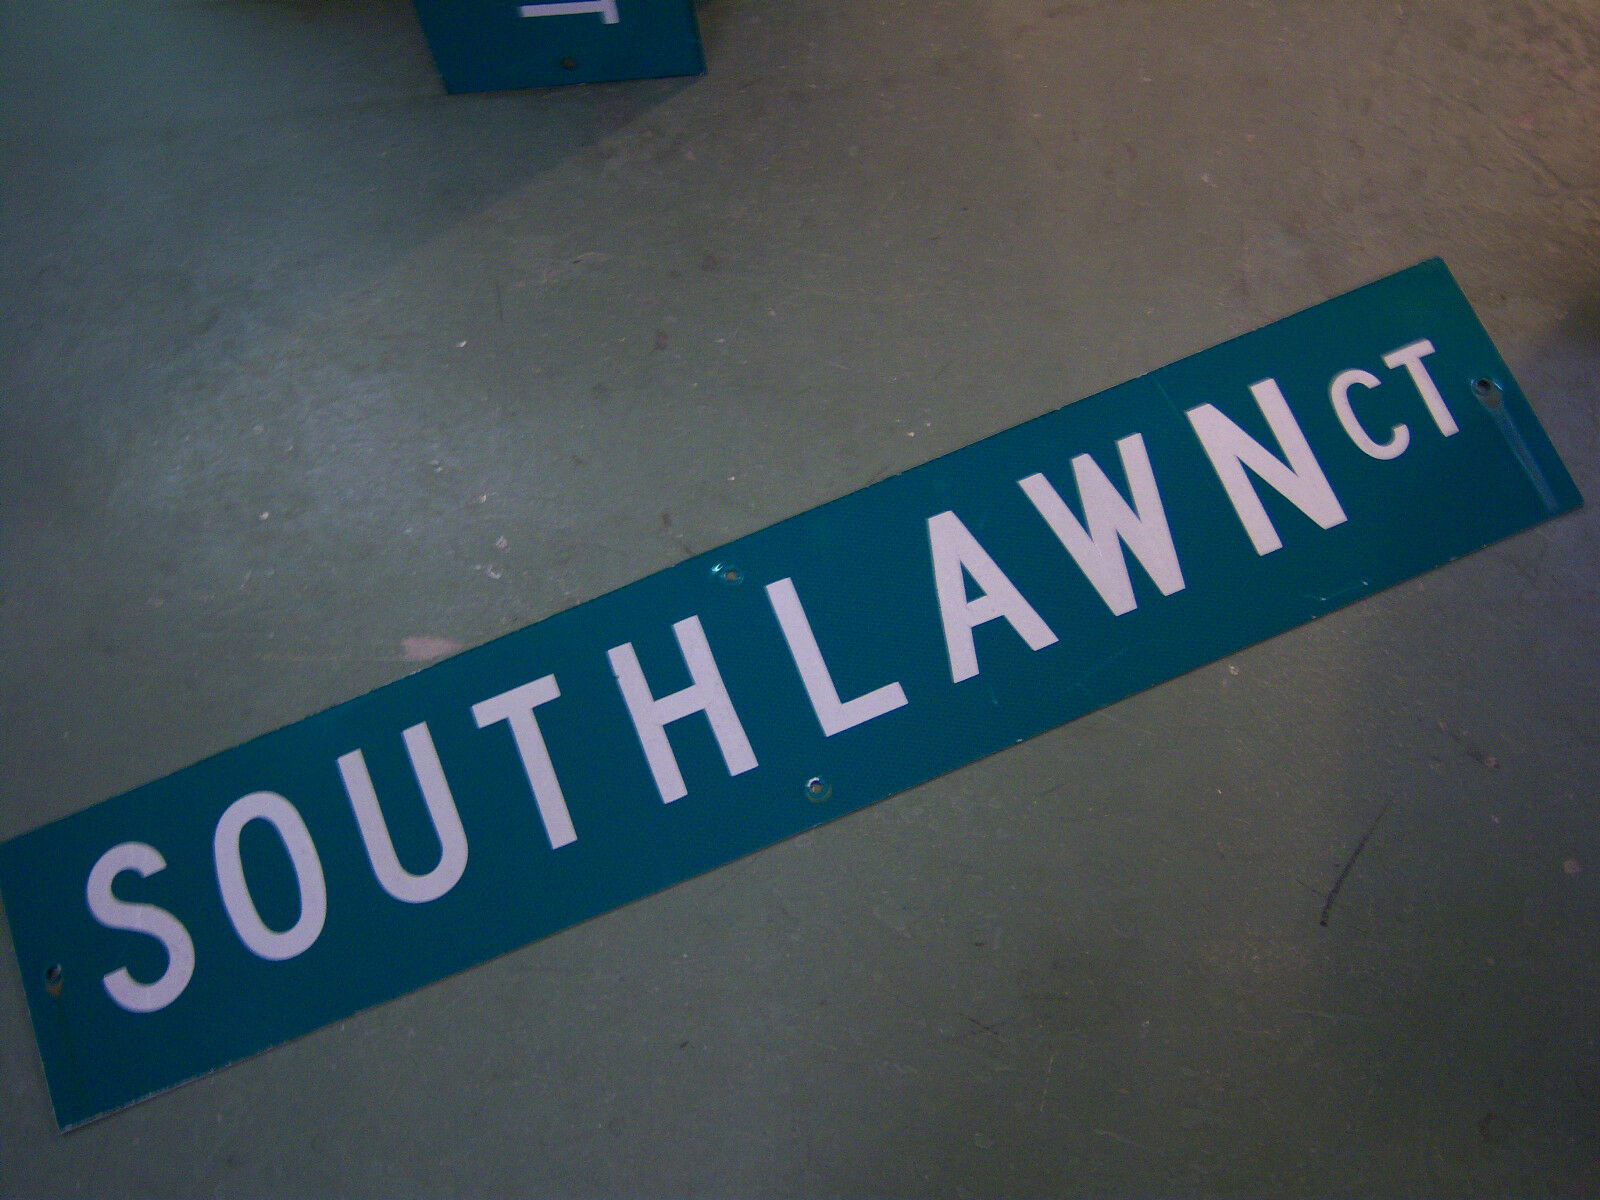 """Large Original Southlawn Ct Street Sign 48"""" X 9"""" White Lettering On Green"""